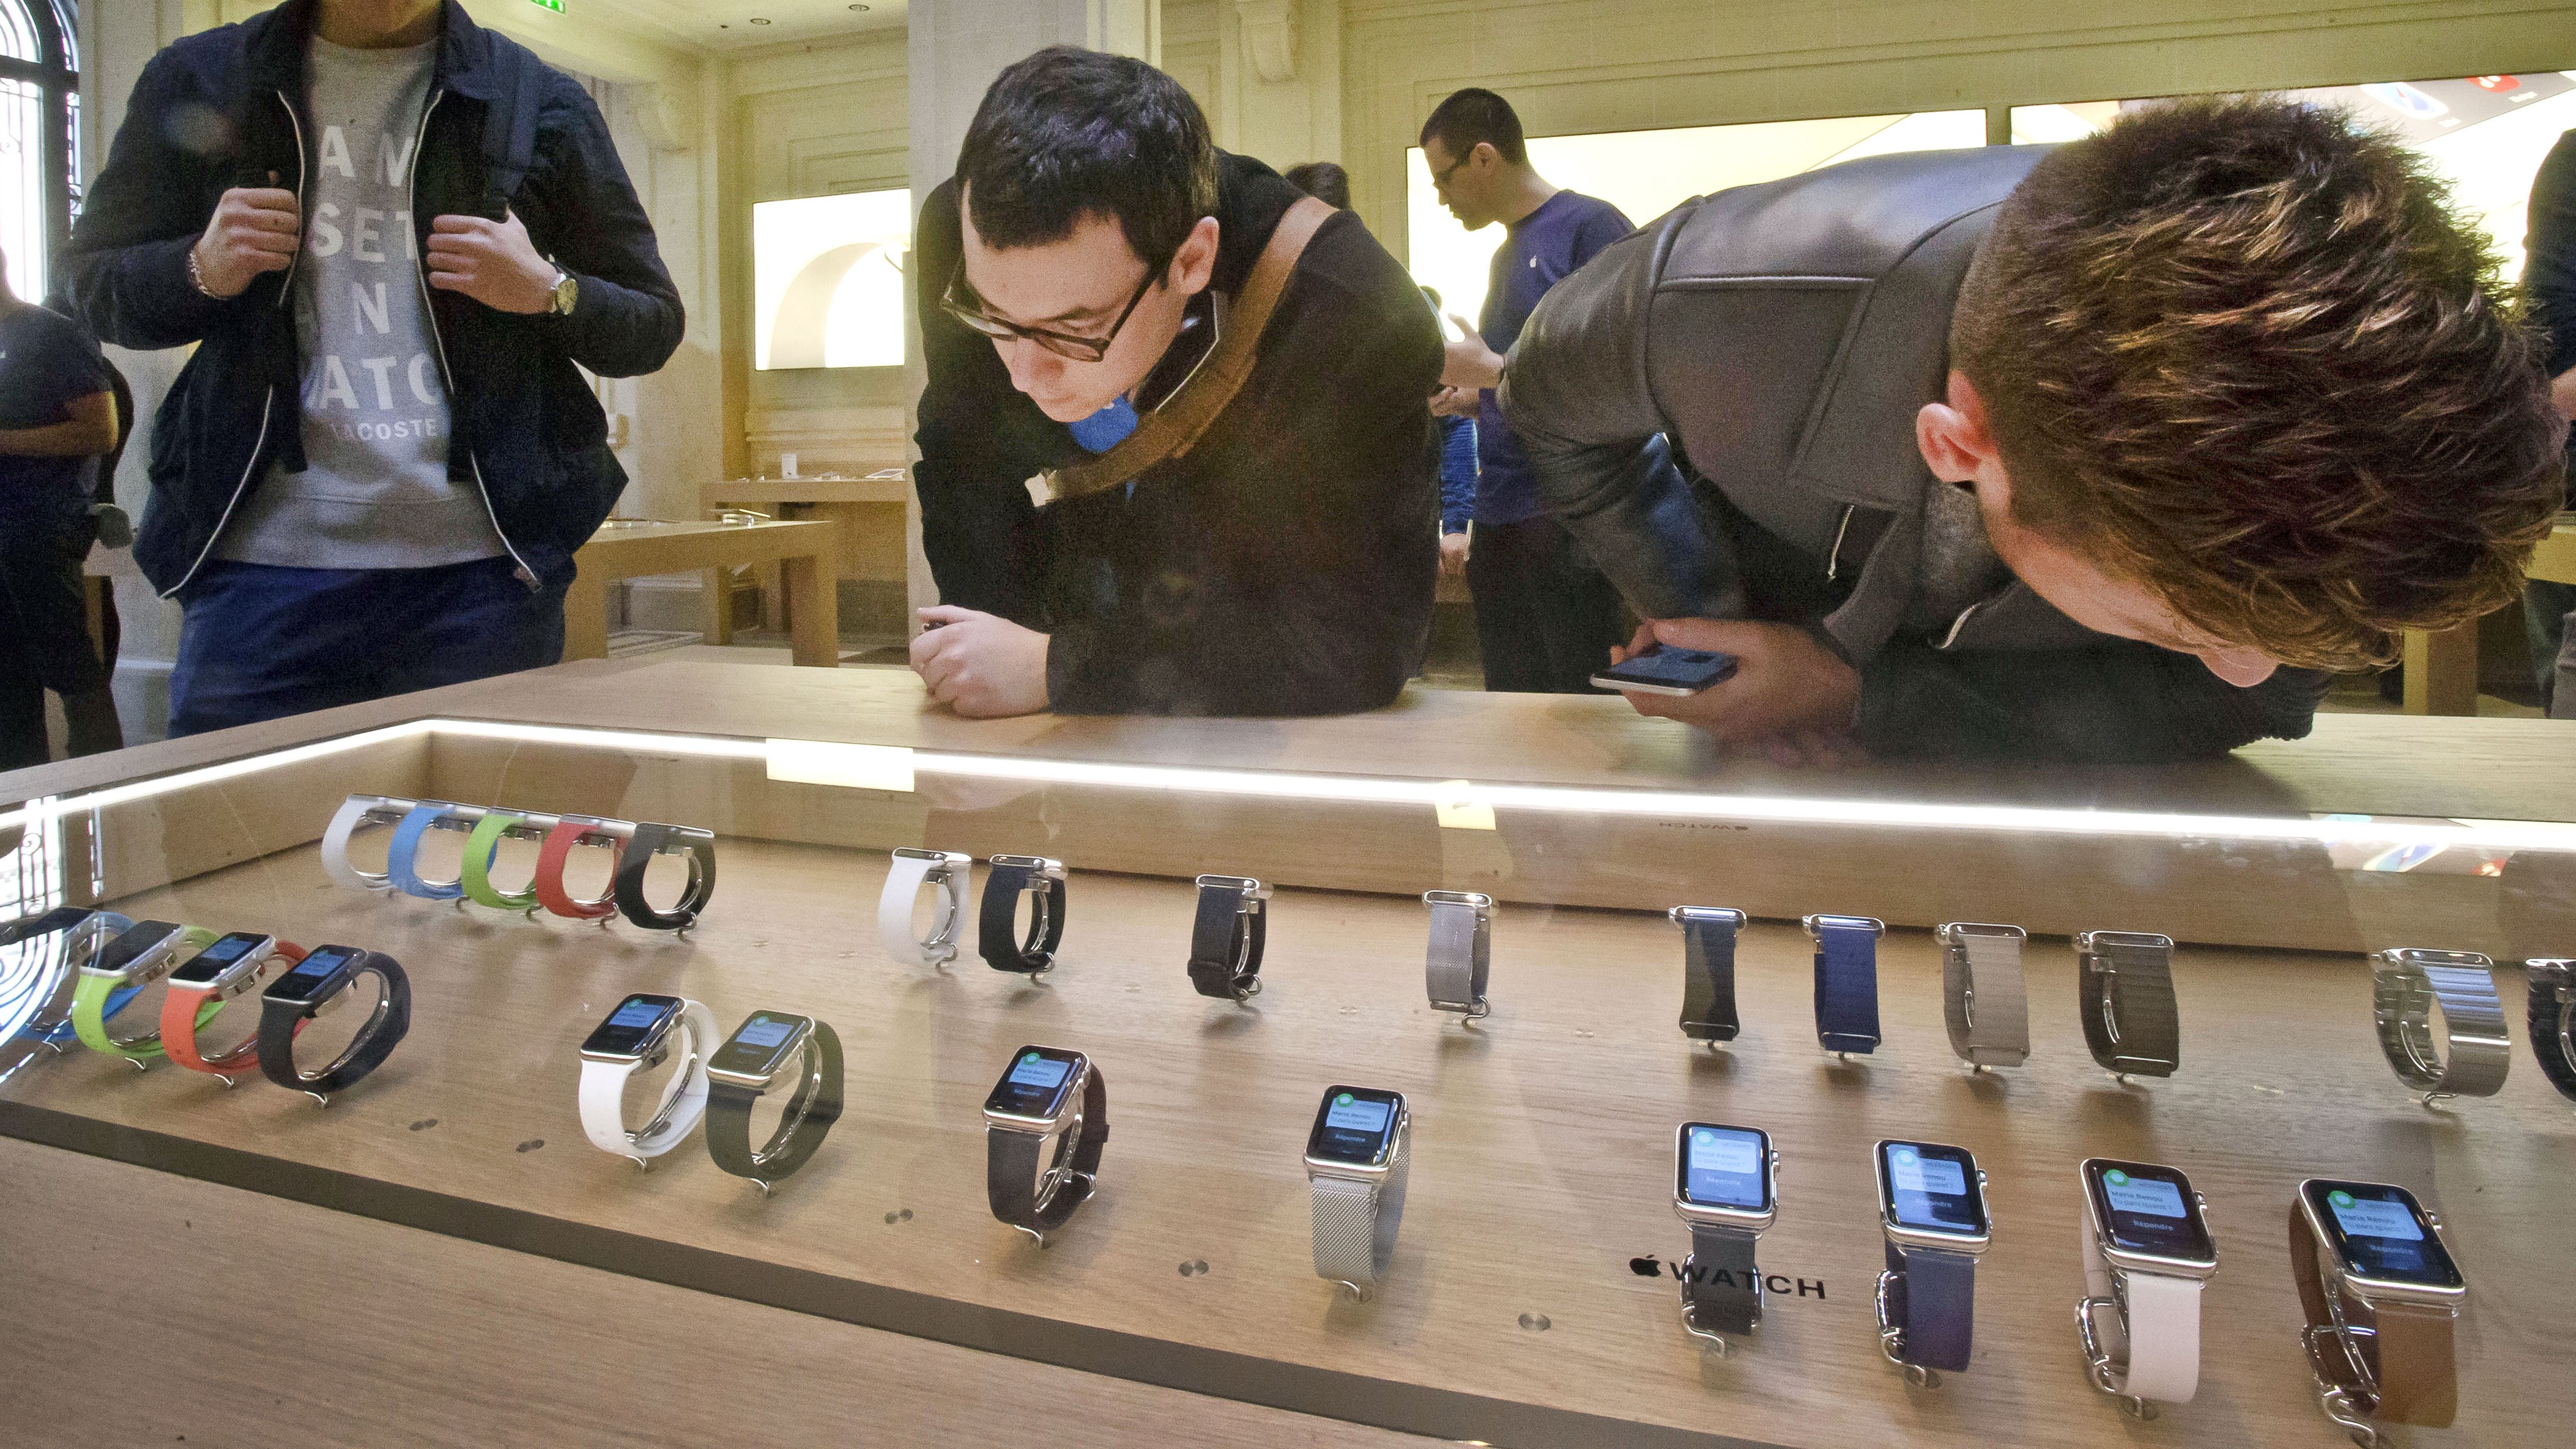 Customers examine the new Apple watches presented at the Paris Opera Apple store Friday April 10, 2015. From Beijing to Paris and San Francisco, the Apple Watch made its world debut Friday. Customers were invited to try them on in stores and order them online. (AP Photo/Michel Euler)